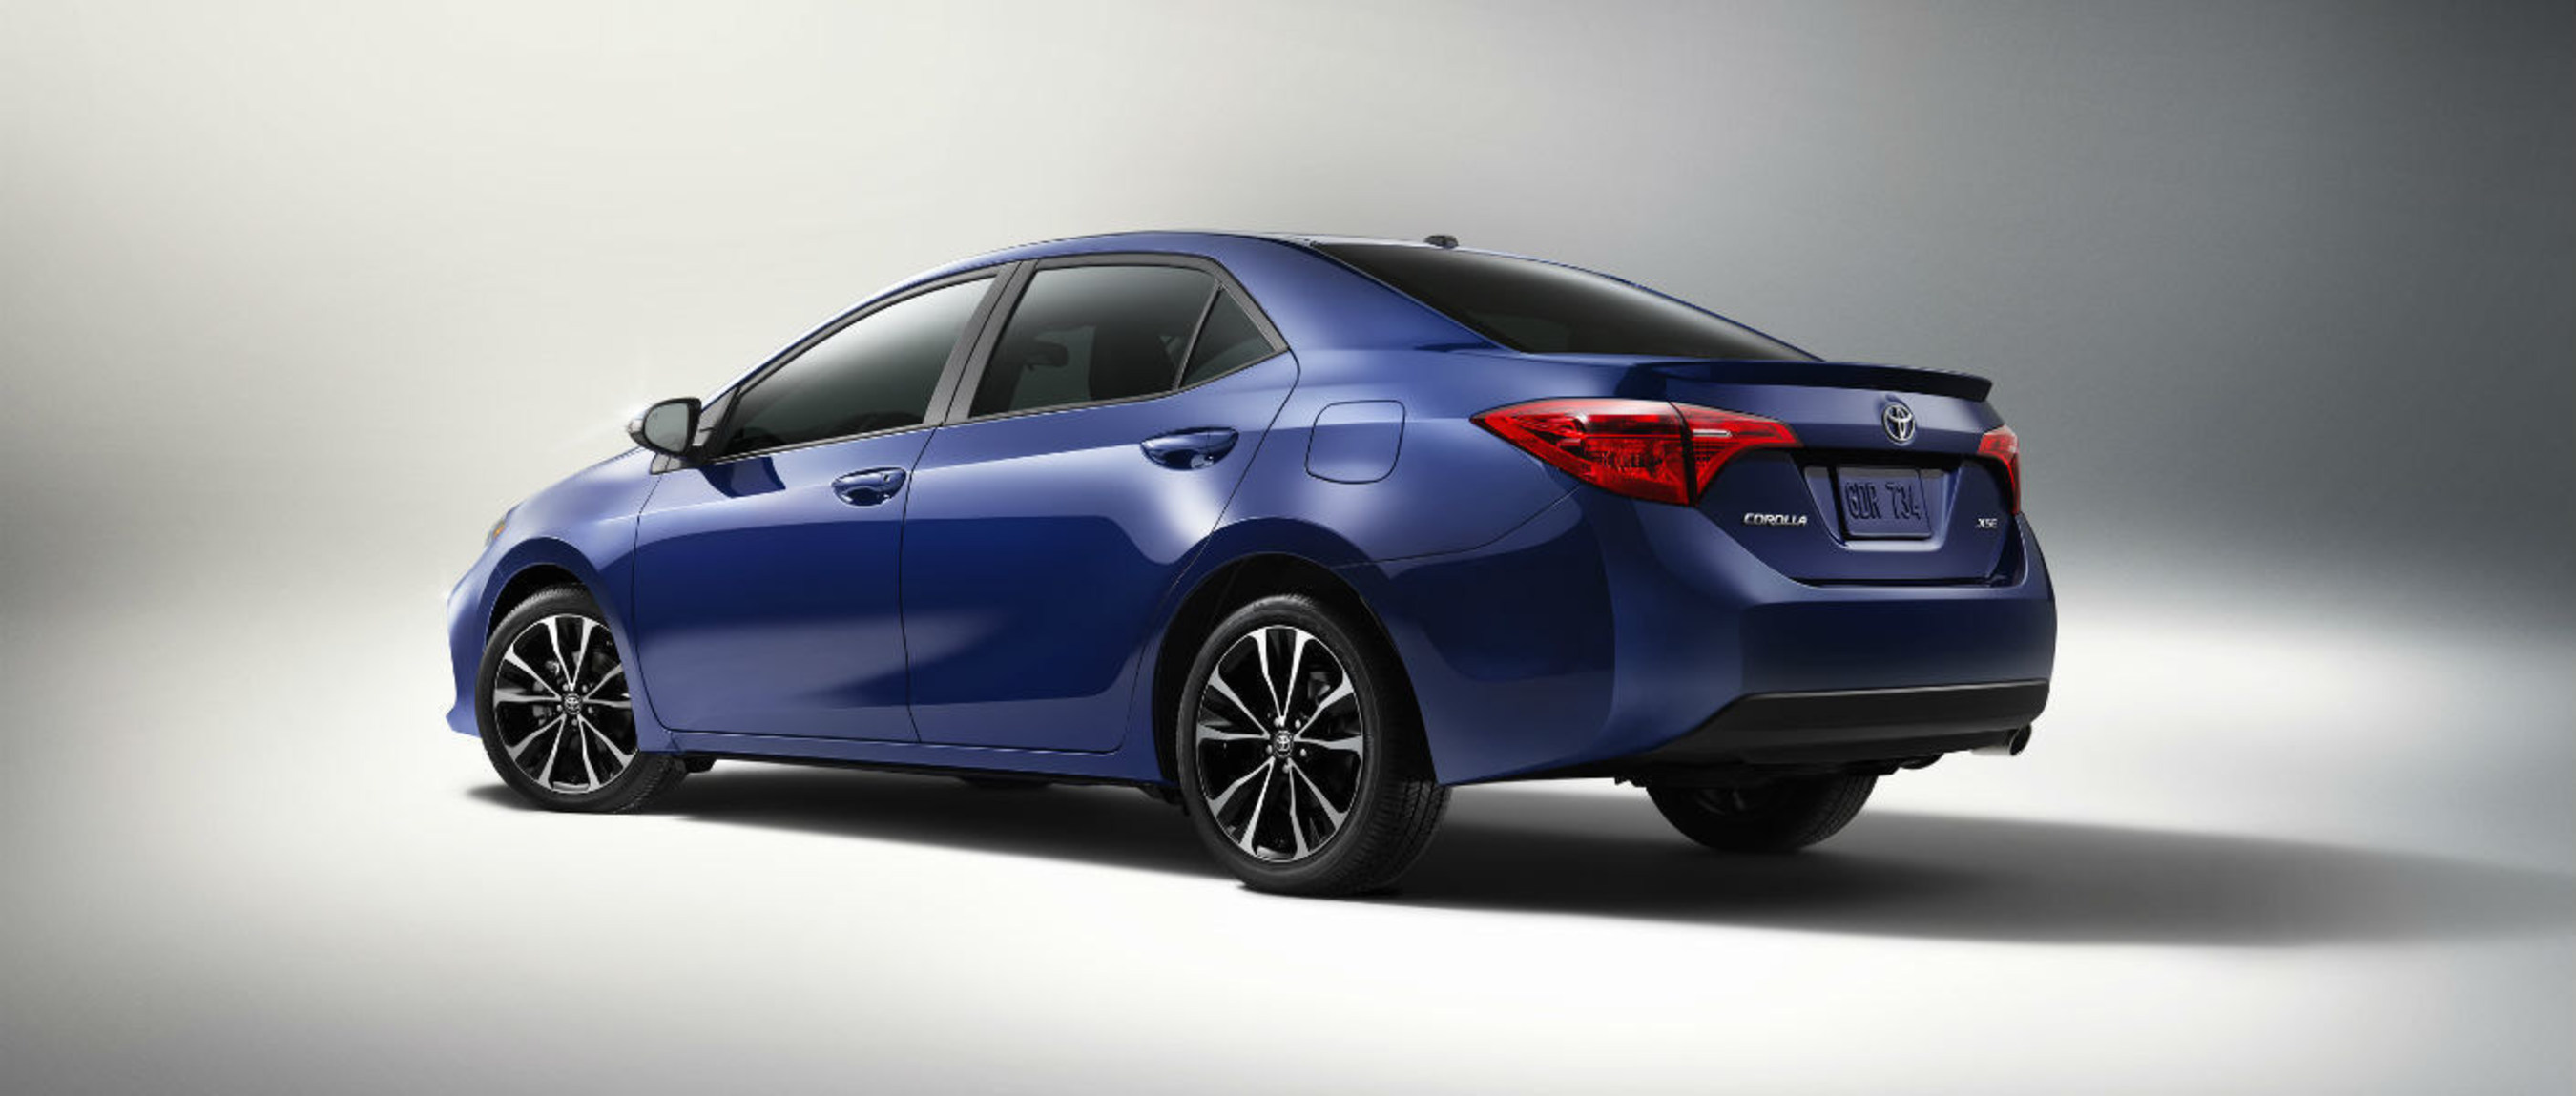 Fred Anderson Toyota ready for 2017 Corolla to arrive